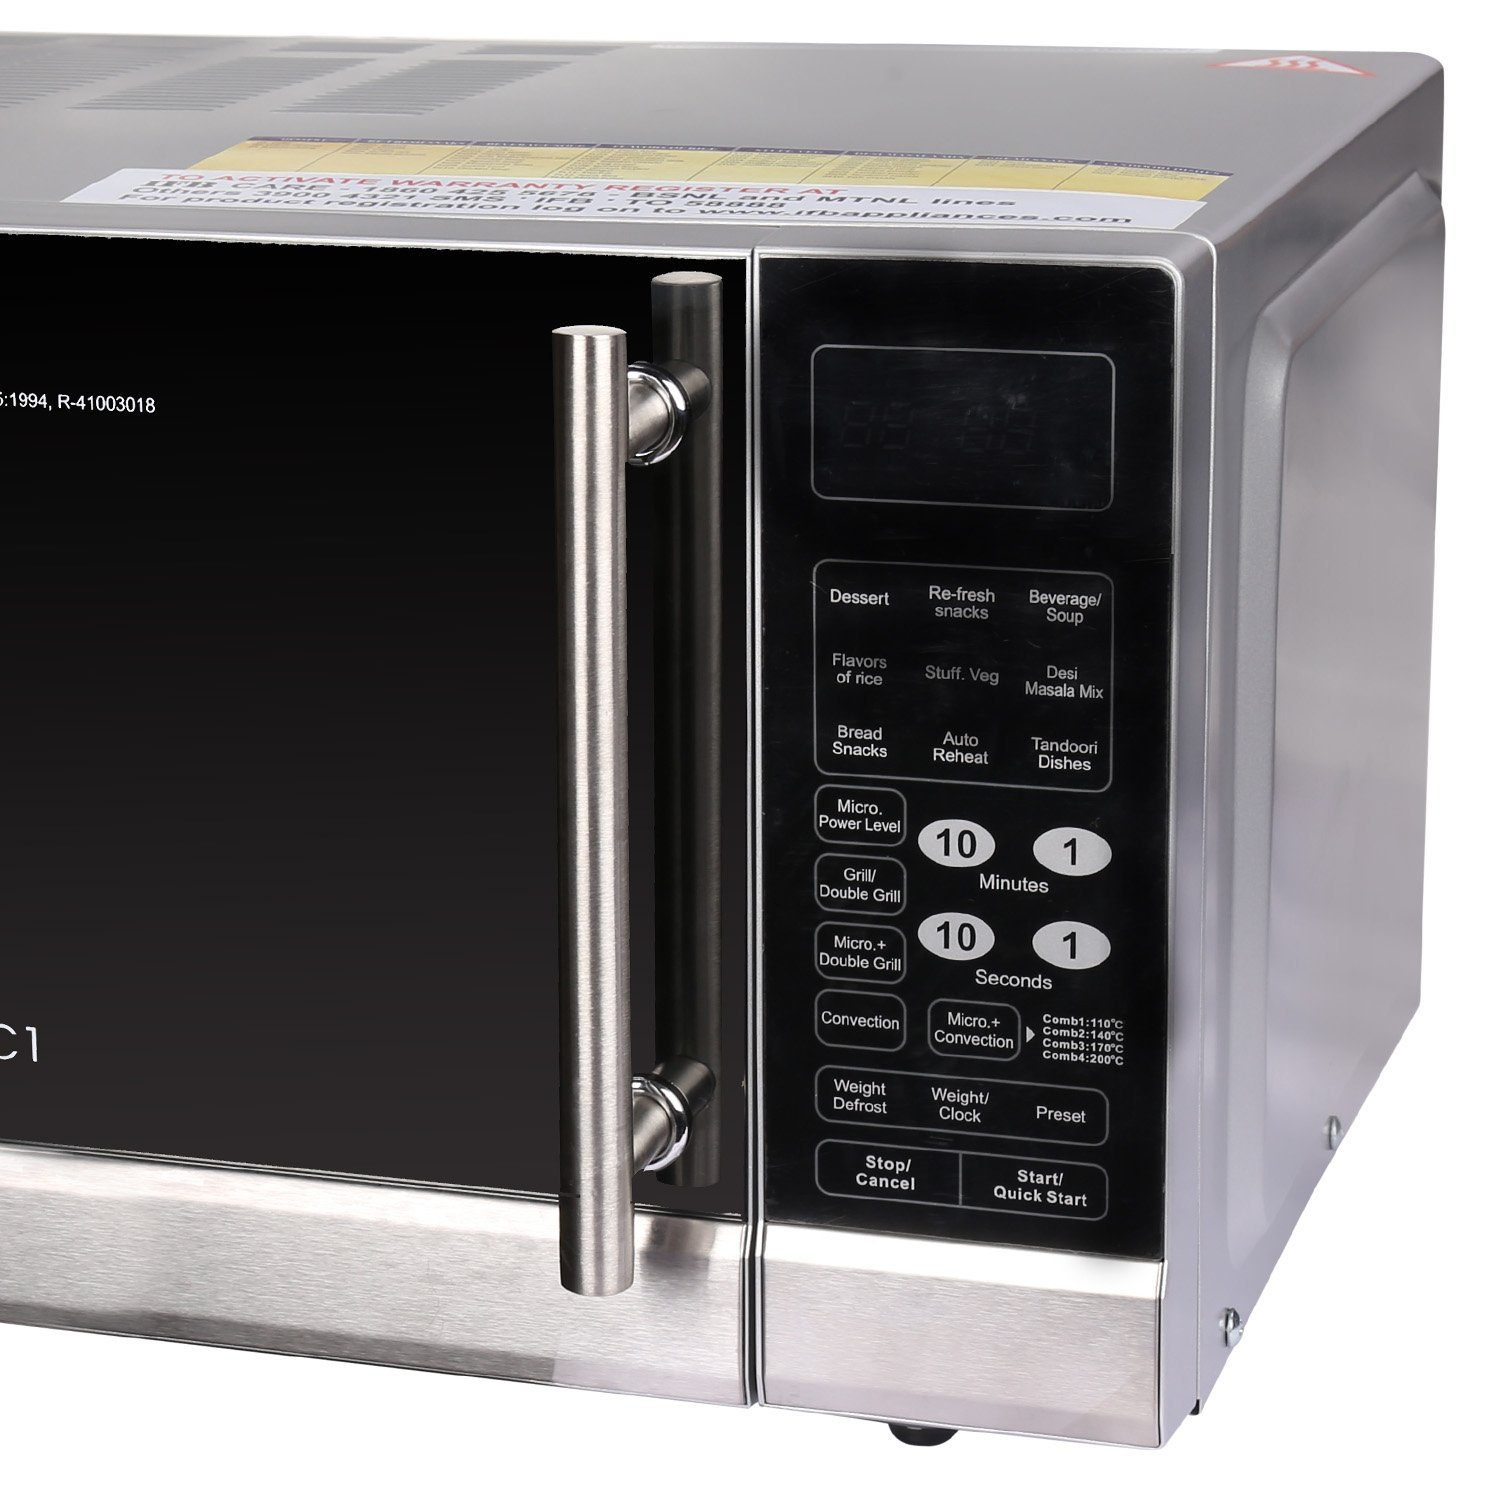 IFB microwave oven 25 liters